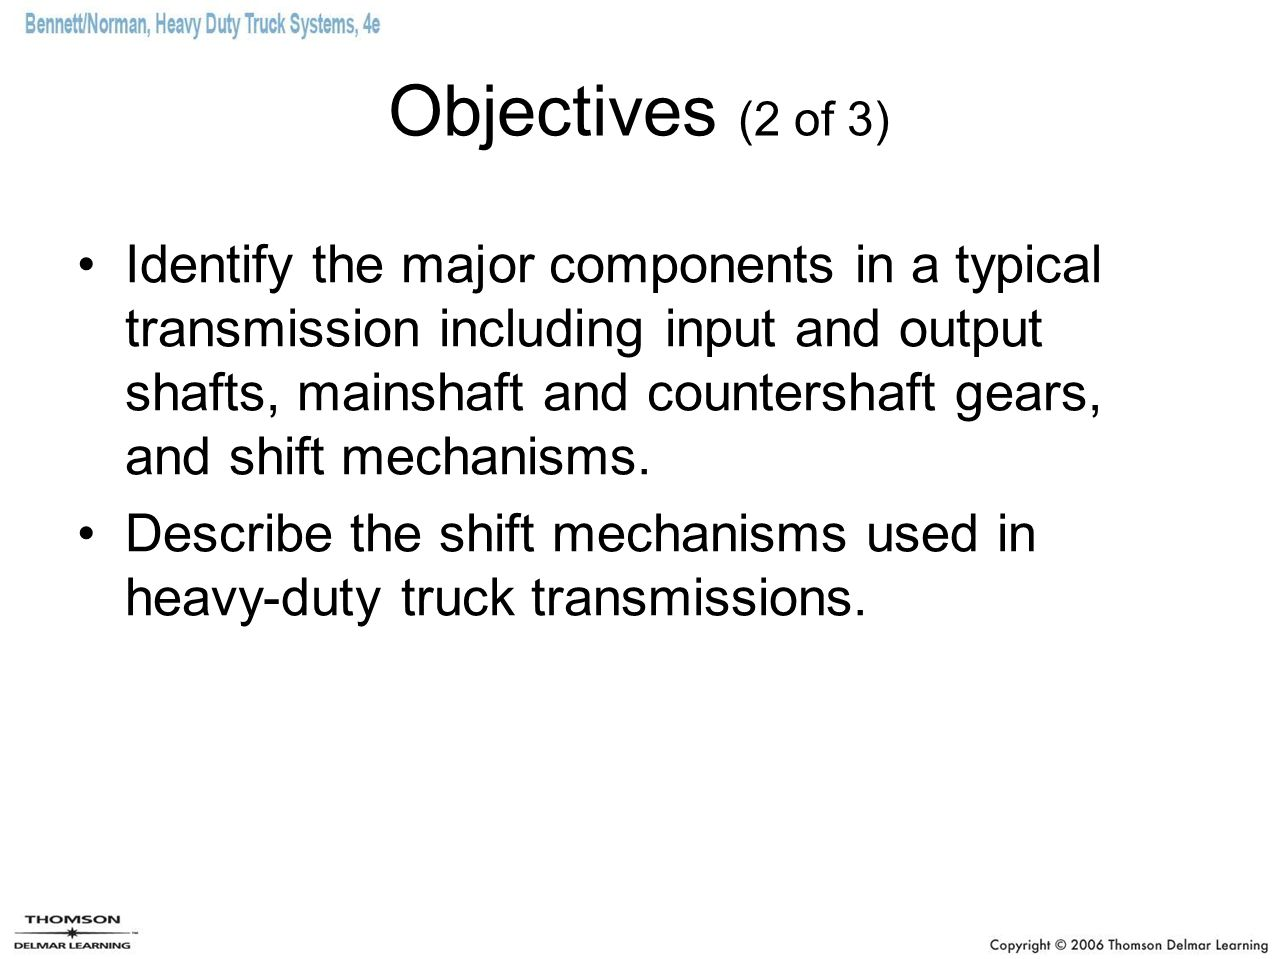 Objectives (2 of 3)